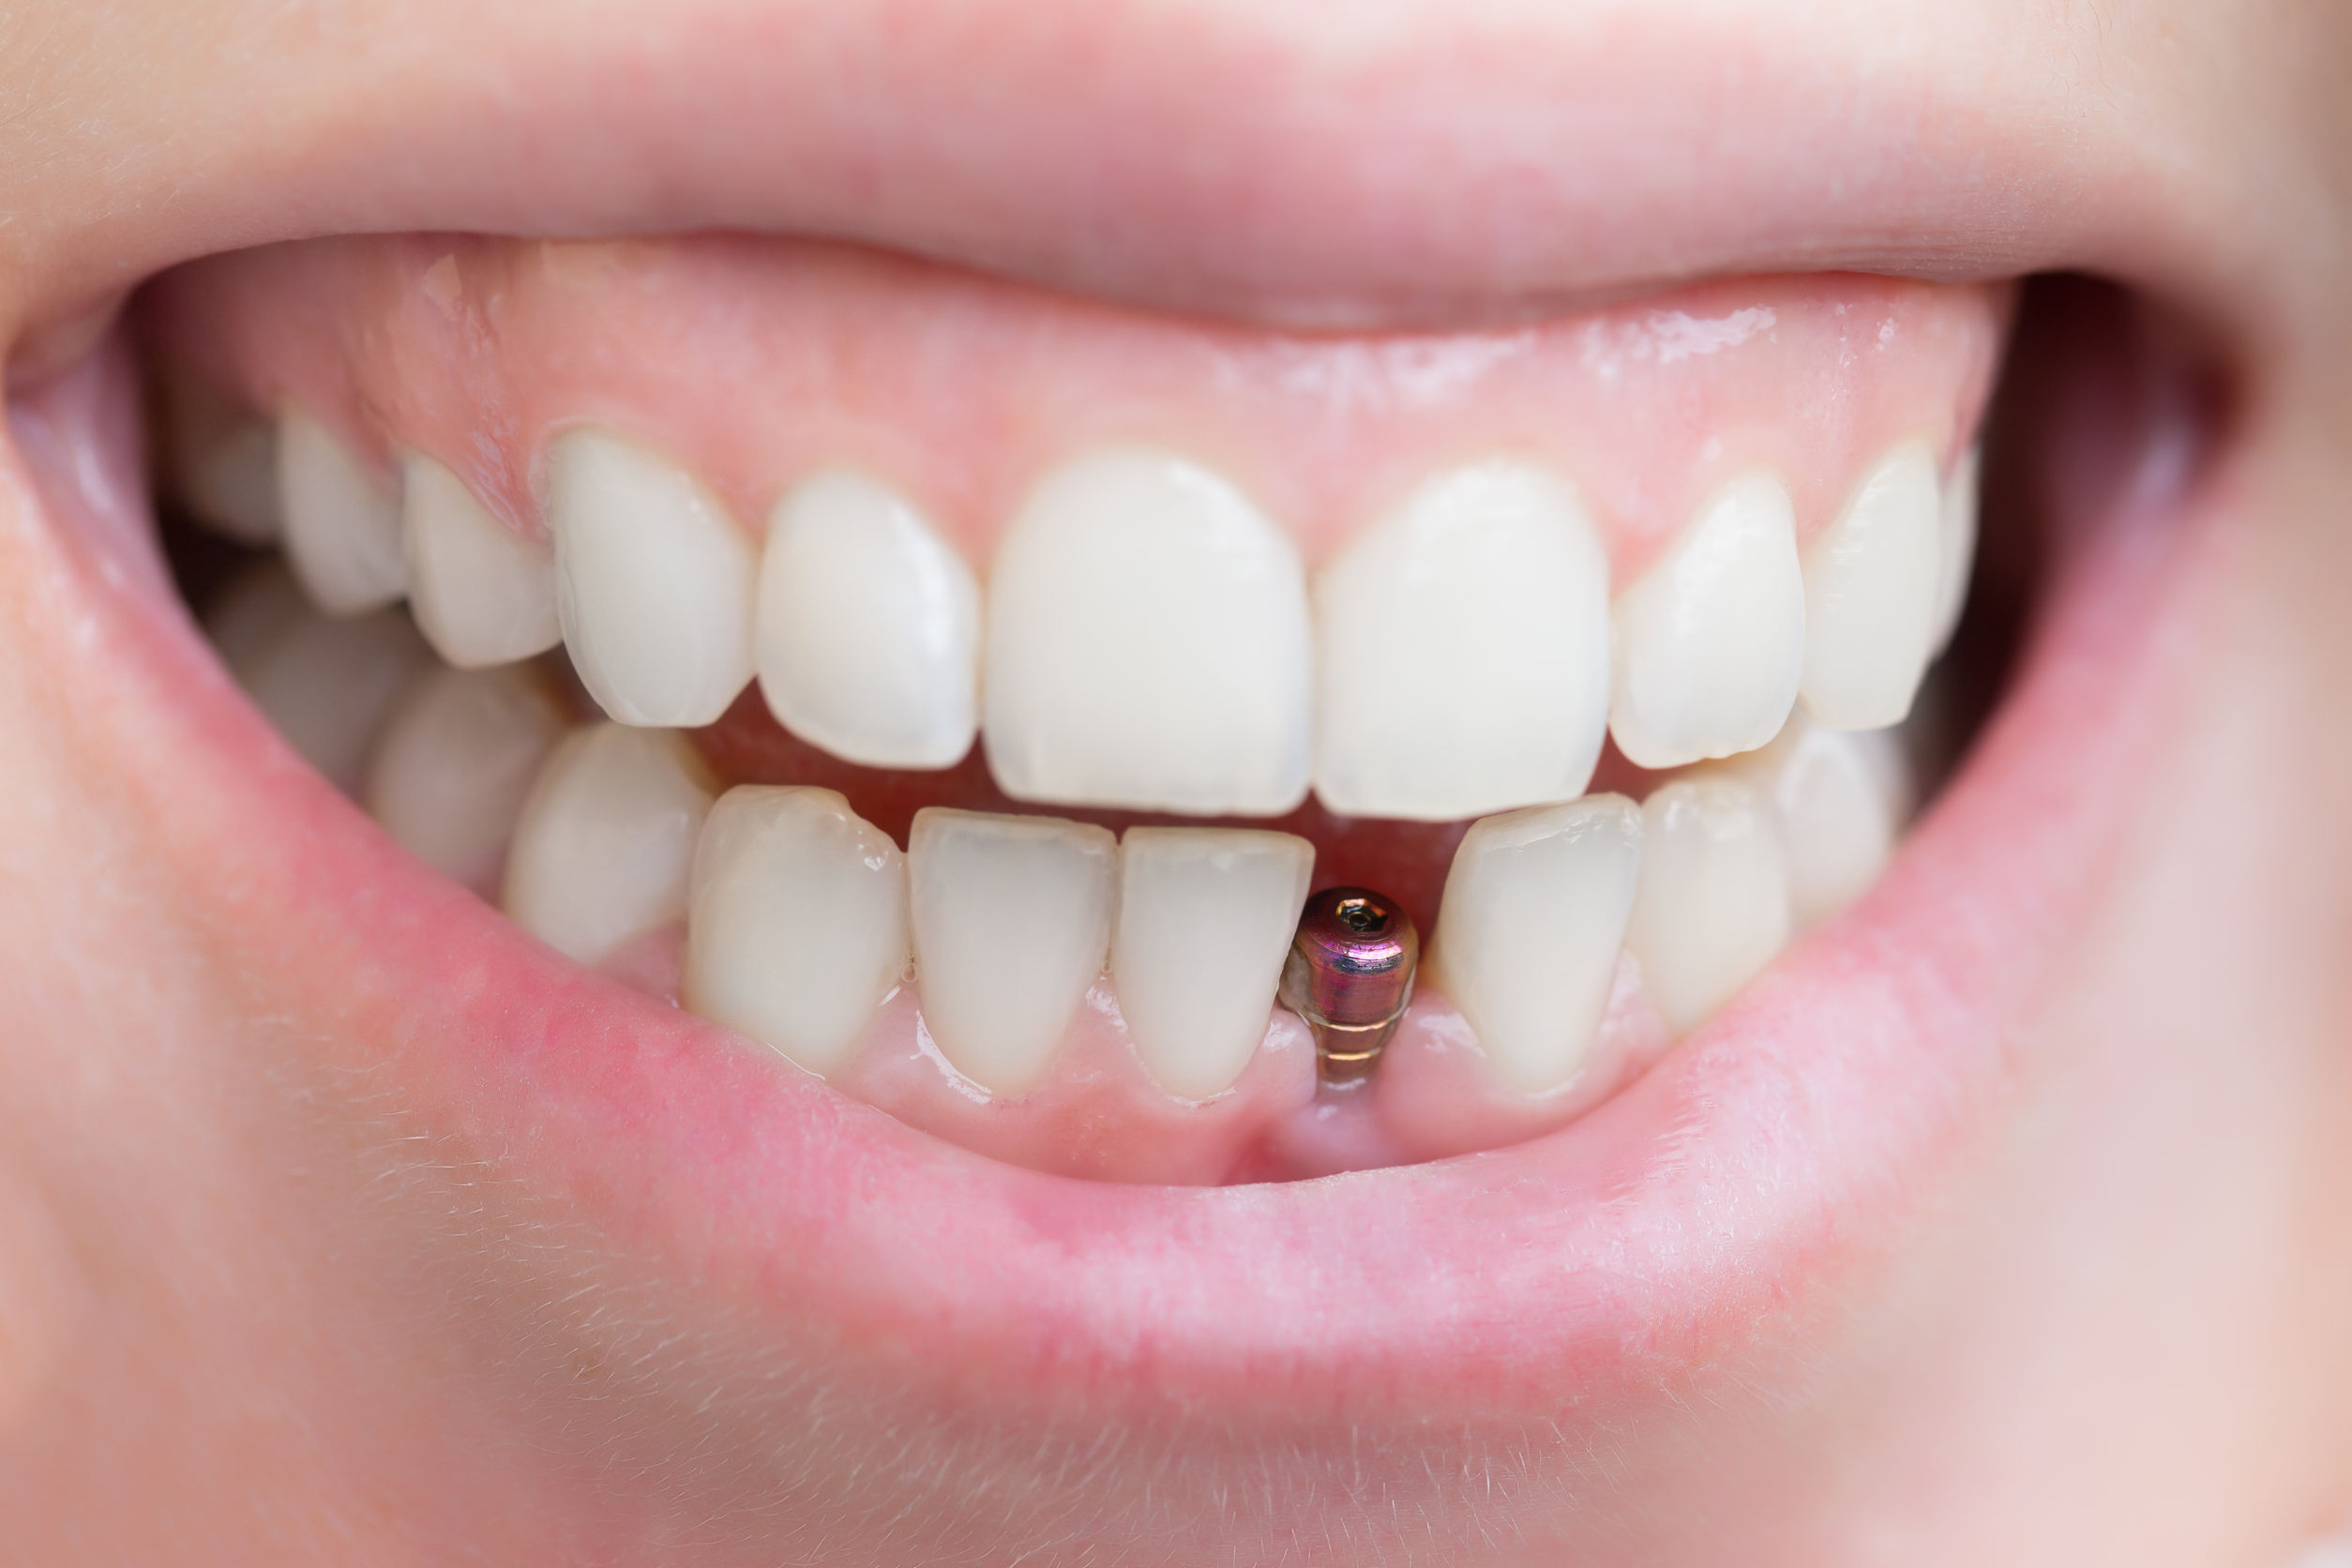 Where Can I Get Mercerville Implants?